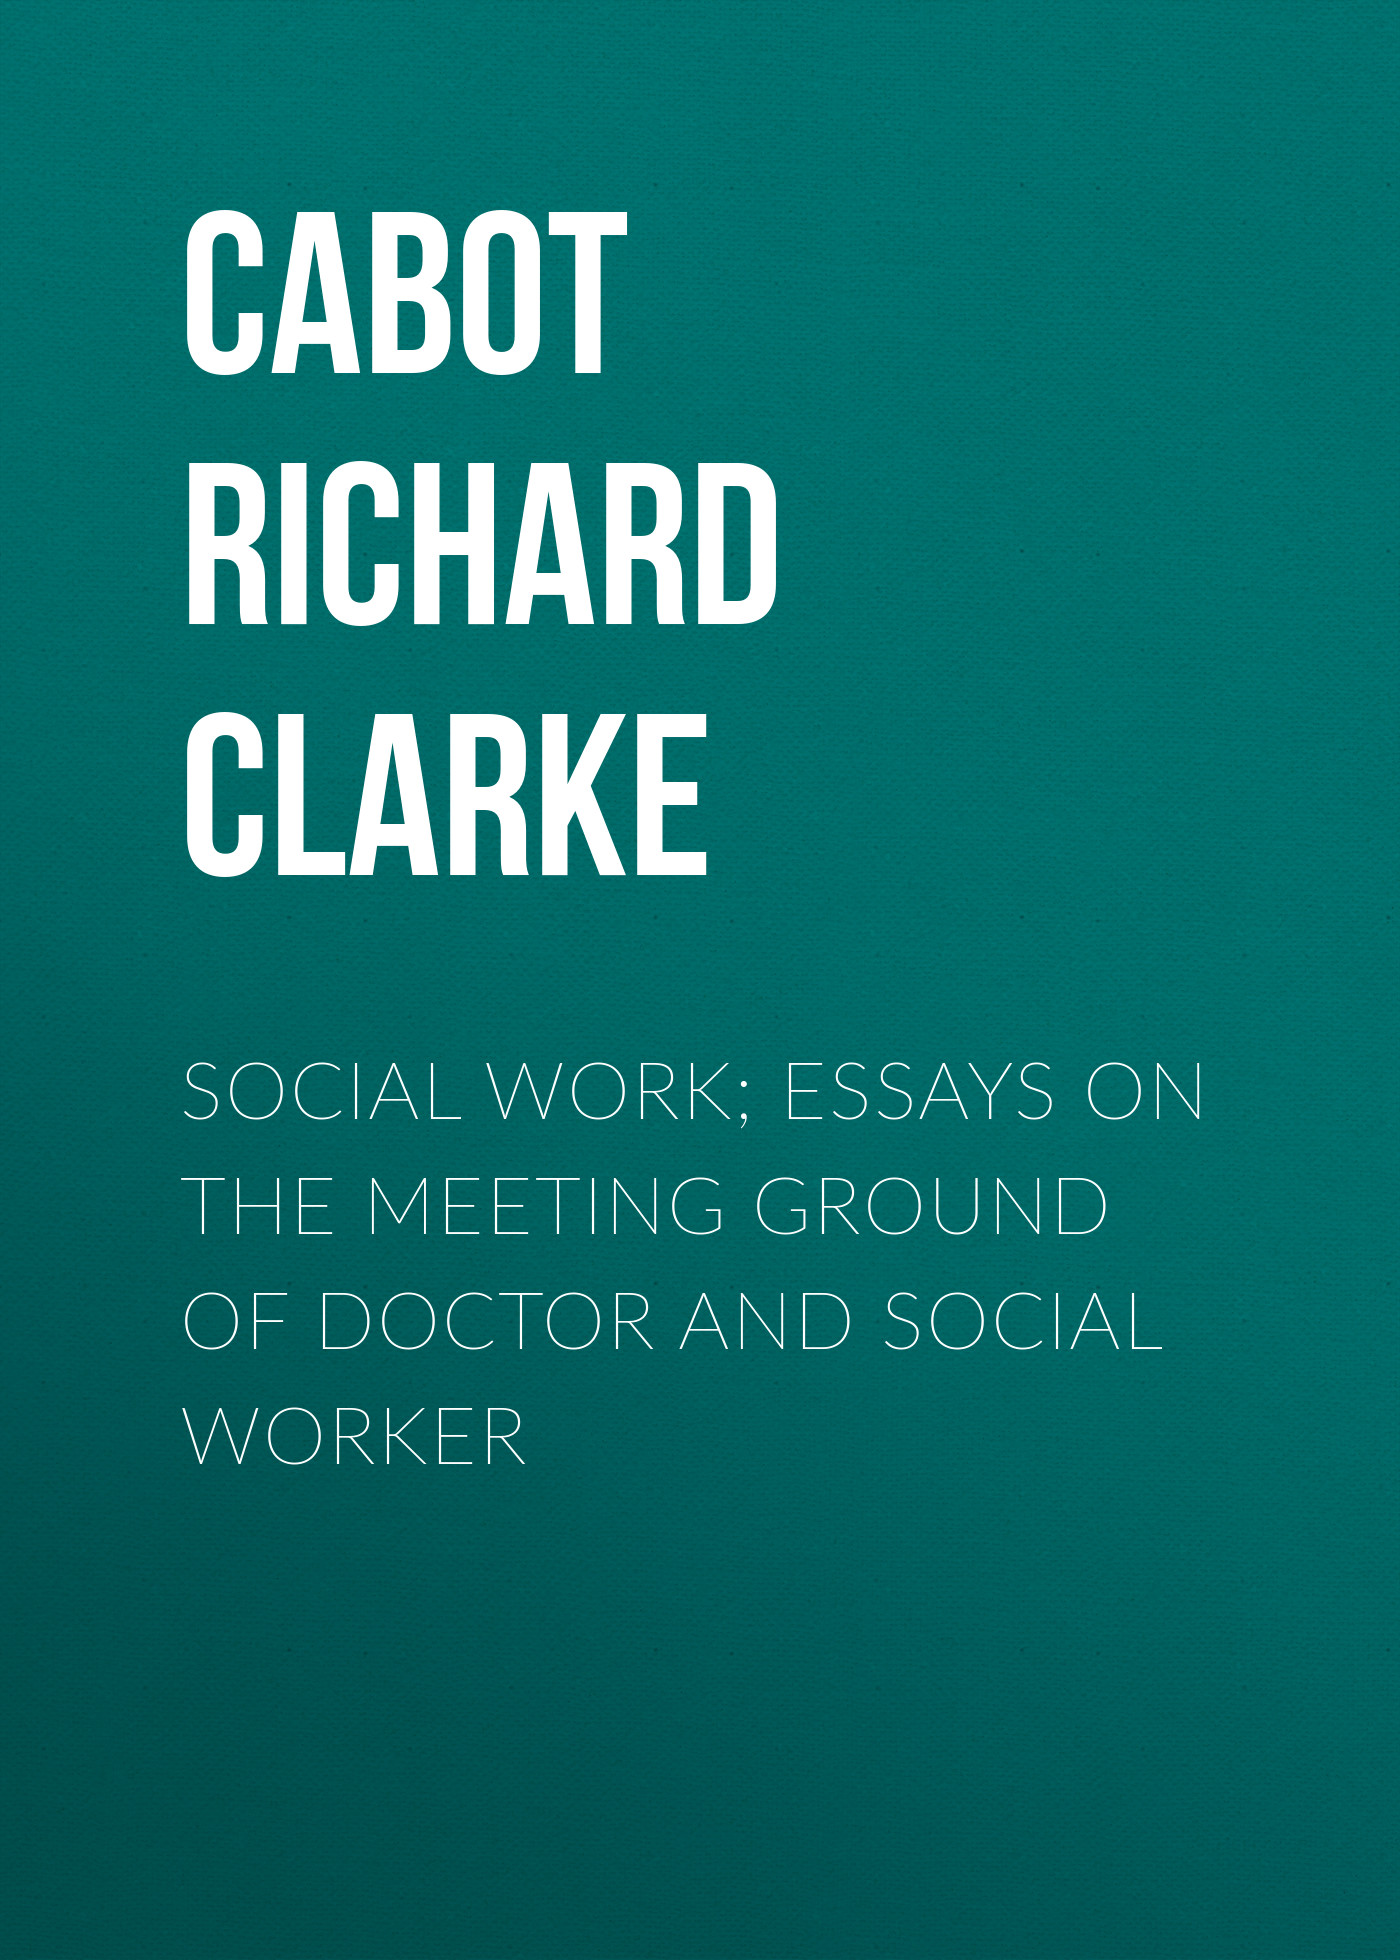 essays on parasitism Cabot Richard Clarke Social Work; Essays on the Meeting Ground of Doctor and Social Worker